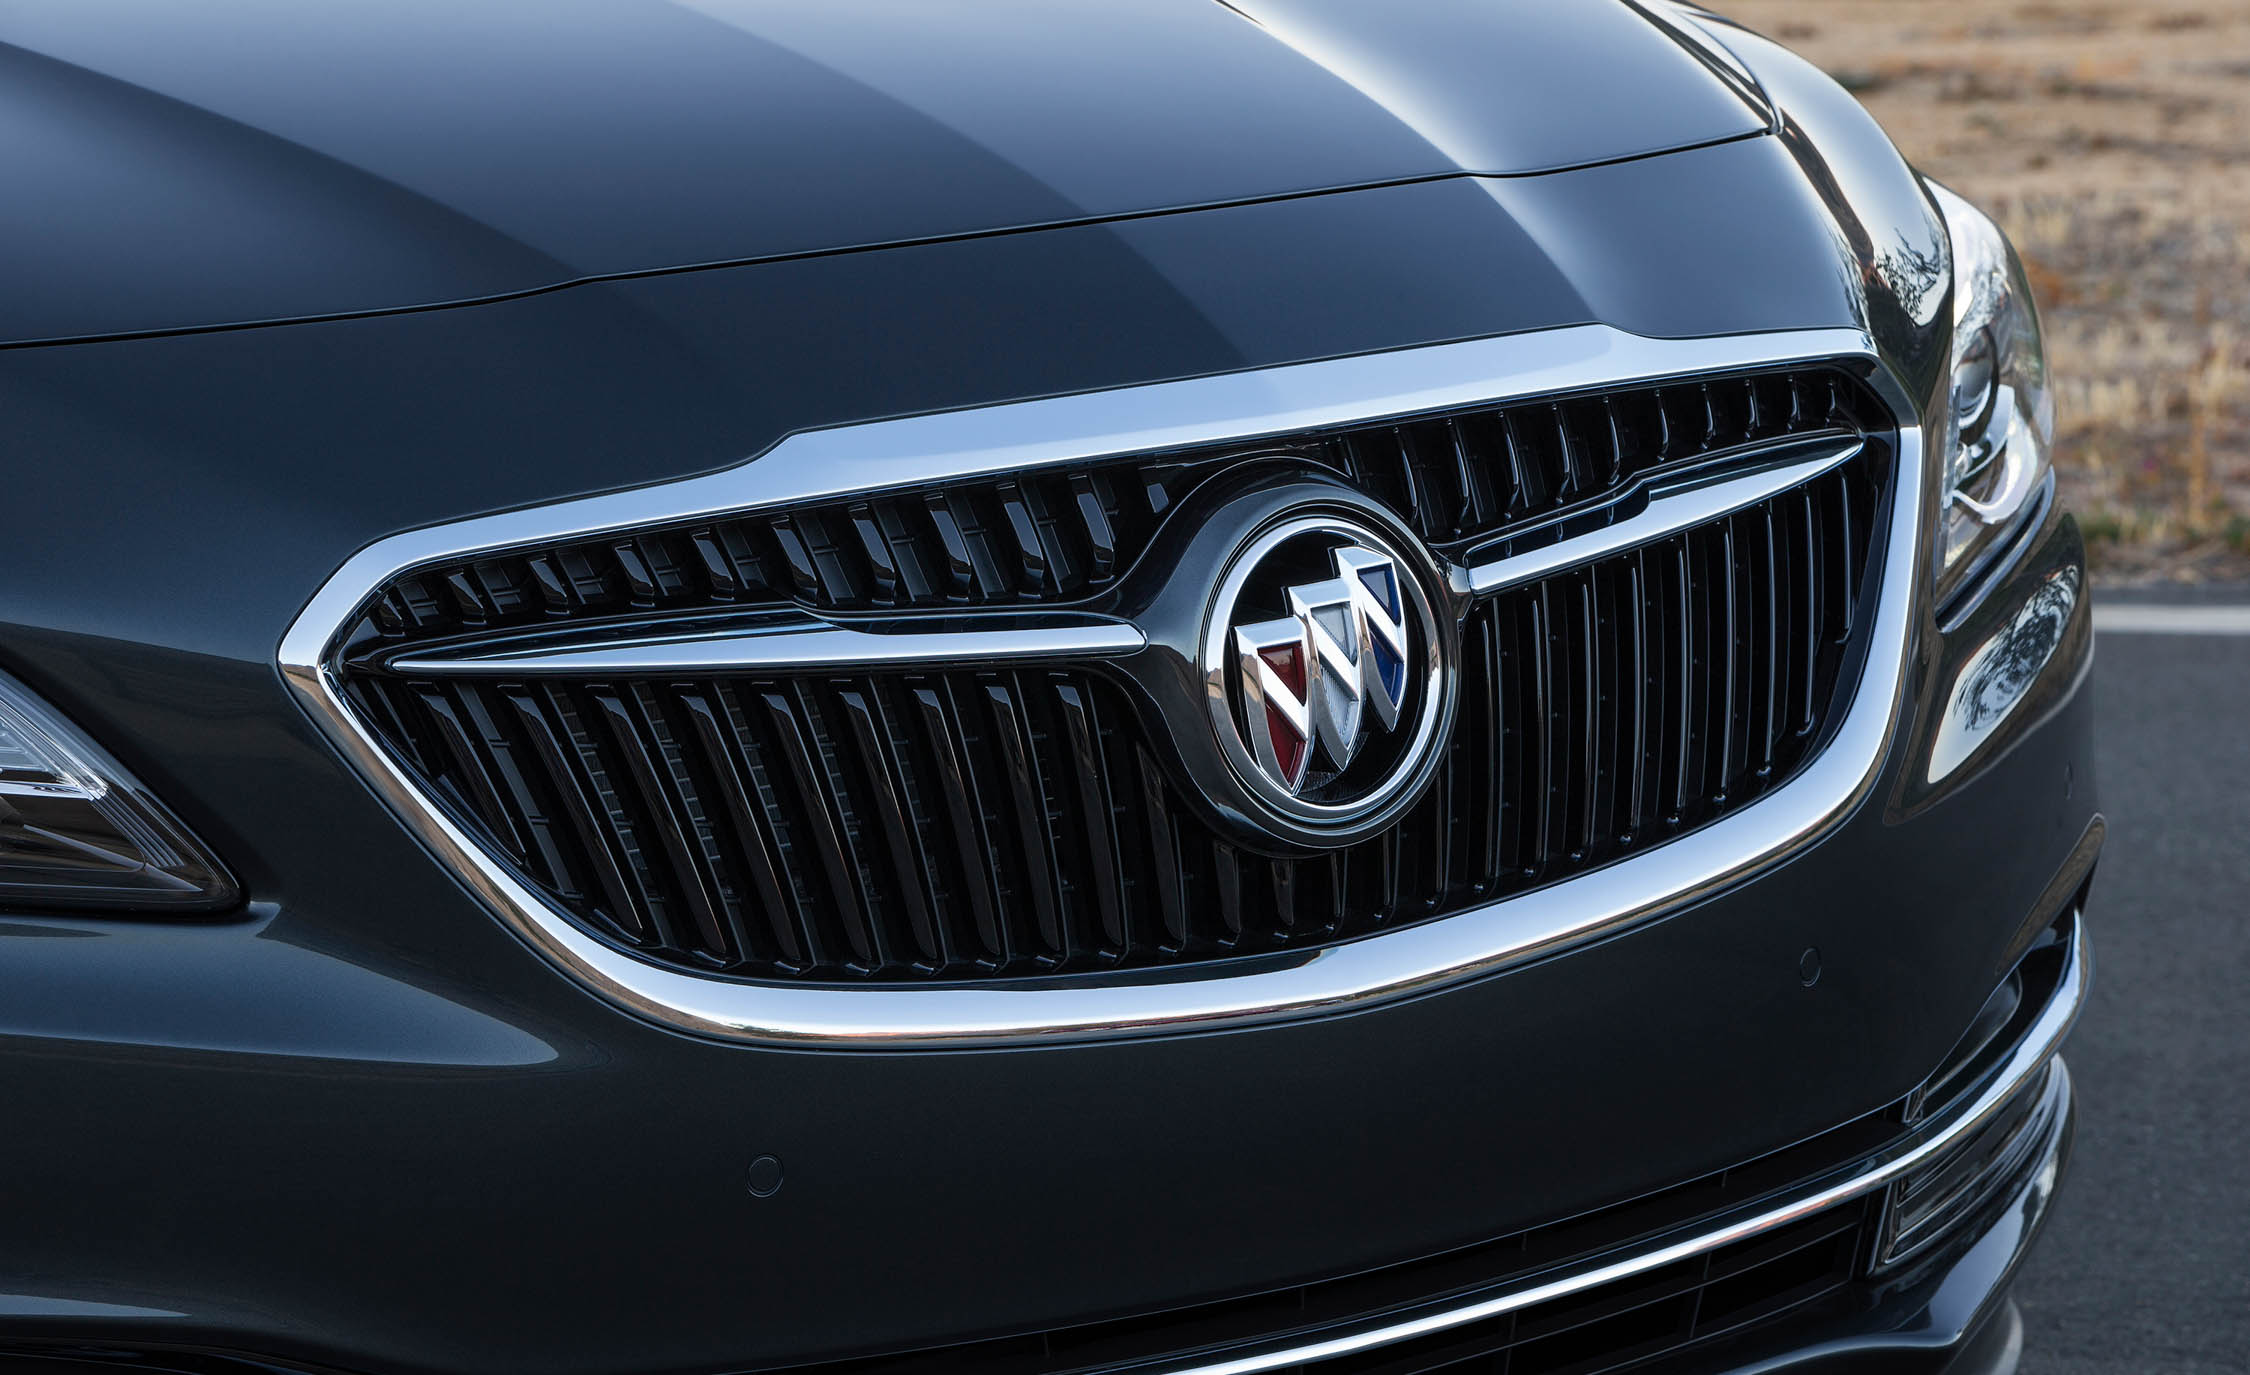 2017 Buick Lacrosse Grille Design (Photo 19 of 26)